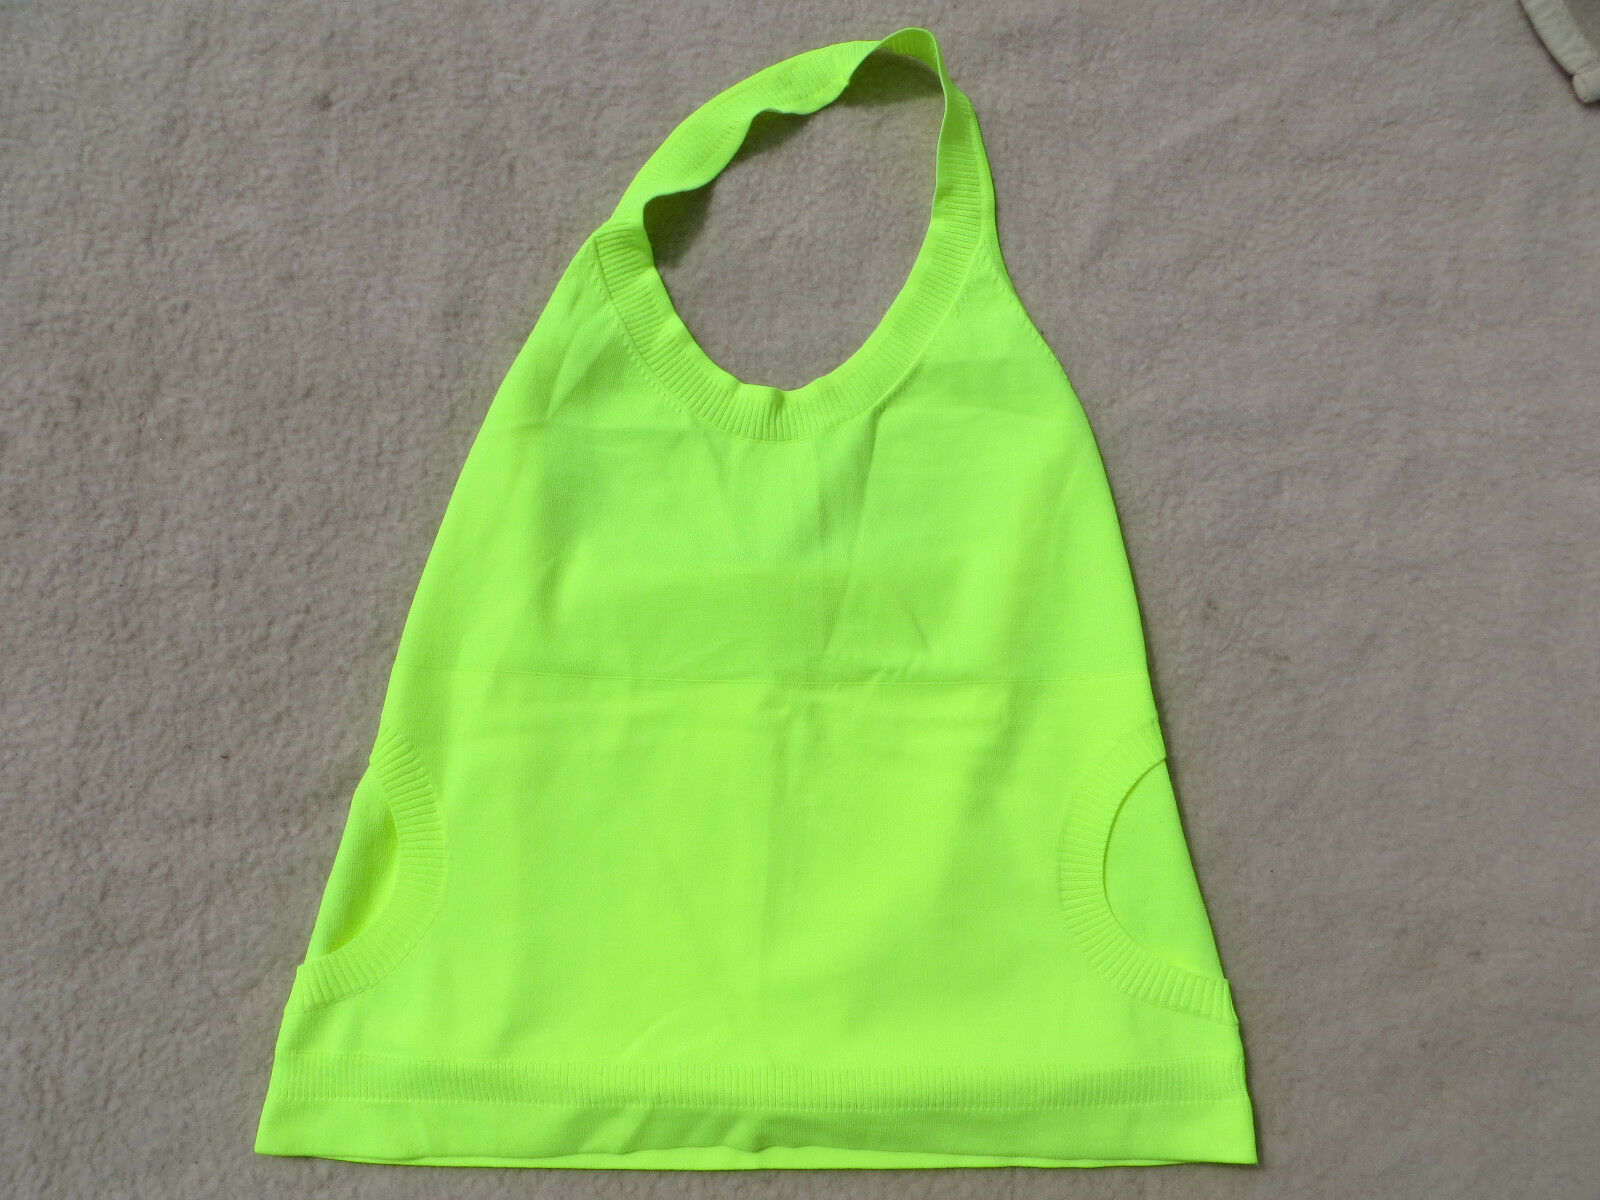 Escada Stricktop Top Shirt Gr. L Neu mit Etikett Neon Gelb 79230 Knitter Top